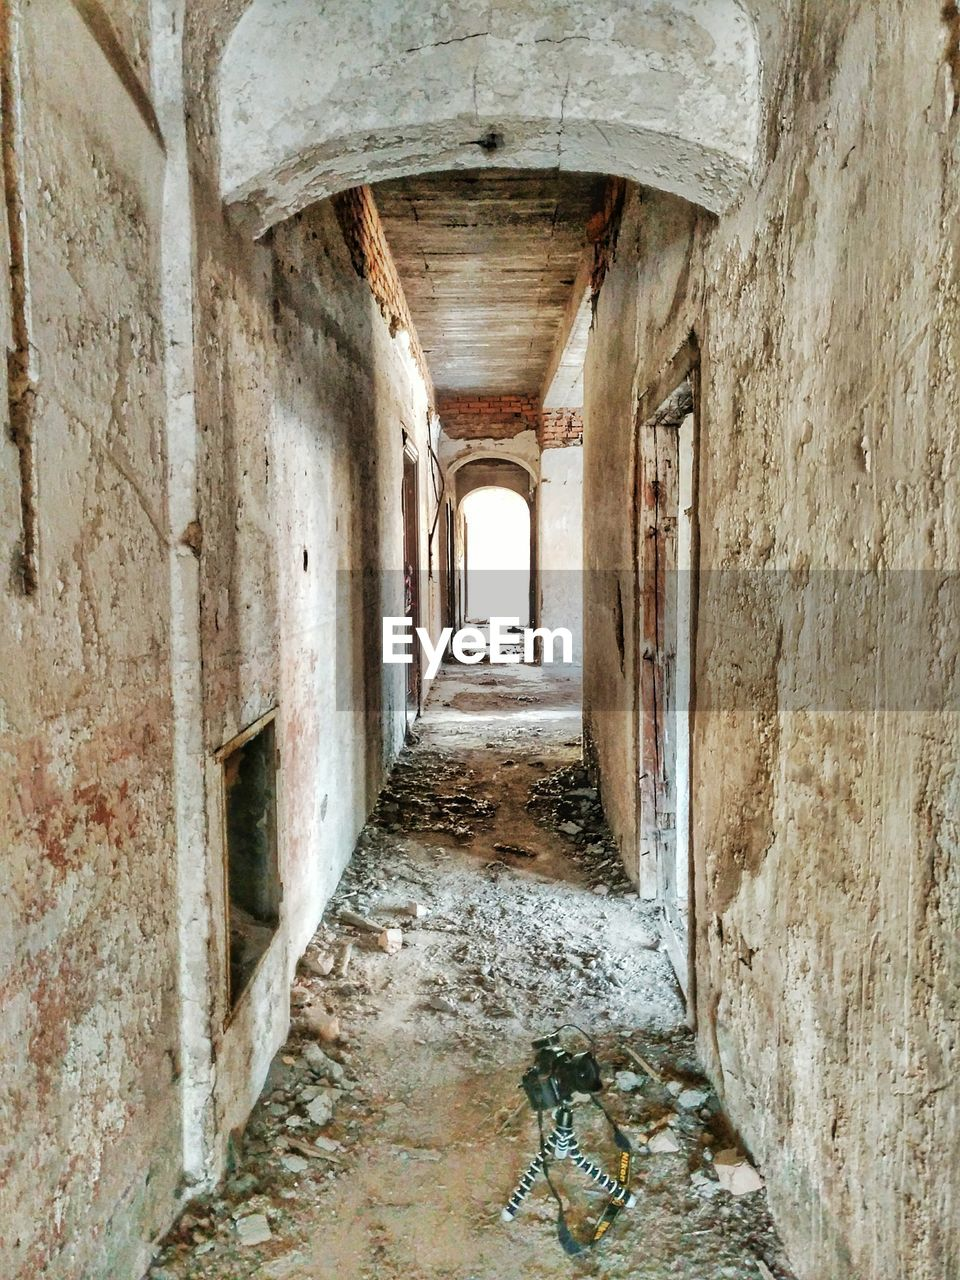 architecture, built structure, arch, old, no people, the way forward, building, day, direction, corridor, history, arcade, the past, indoors, wall - building feature, abandoned, wall, weathered, decline, deterioration, ceiling, ruined